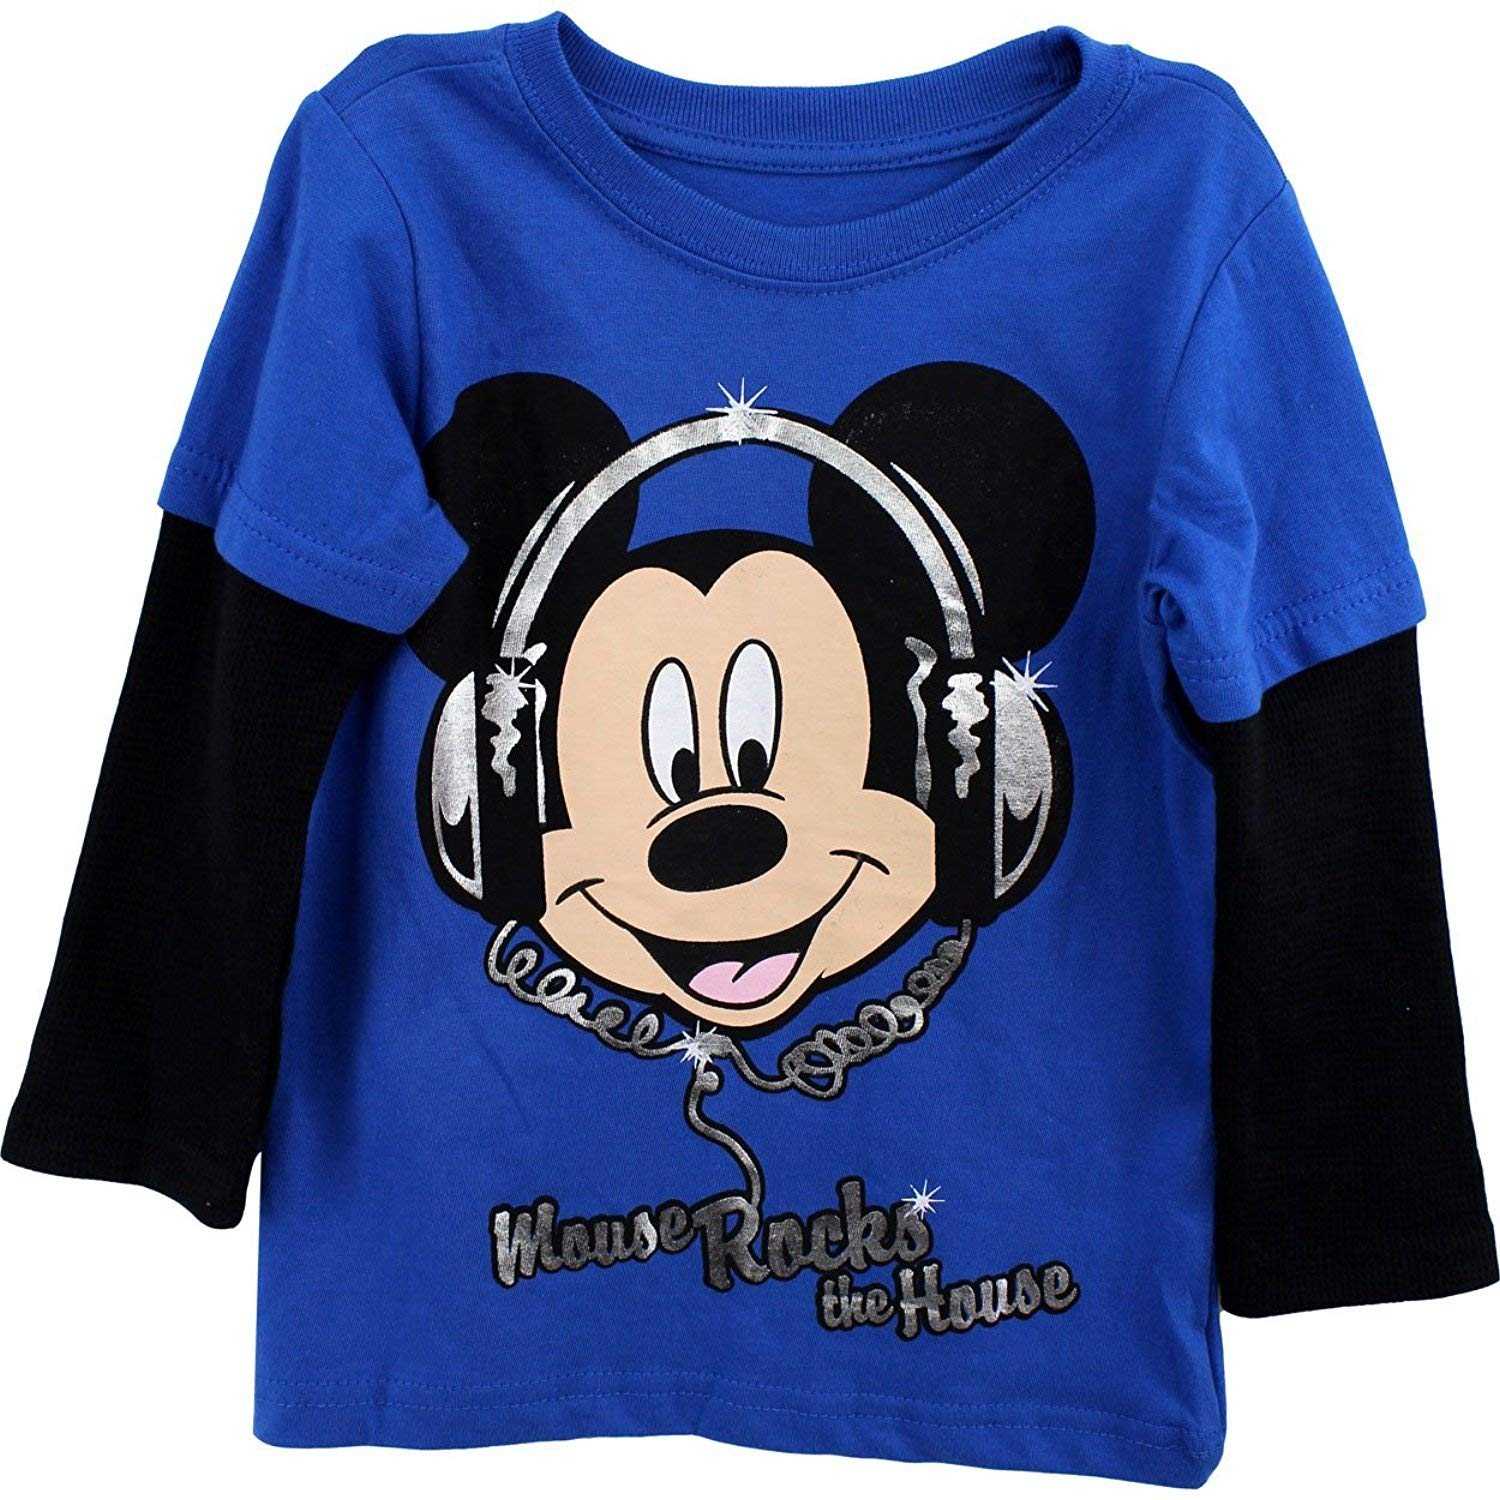 27ed2f13 Get Quotations · Mickey Mouse Toddler Boys Shirt Mickey Mouse Rocks The  House Tee Blue